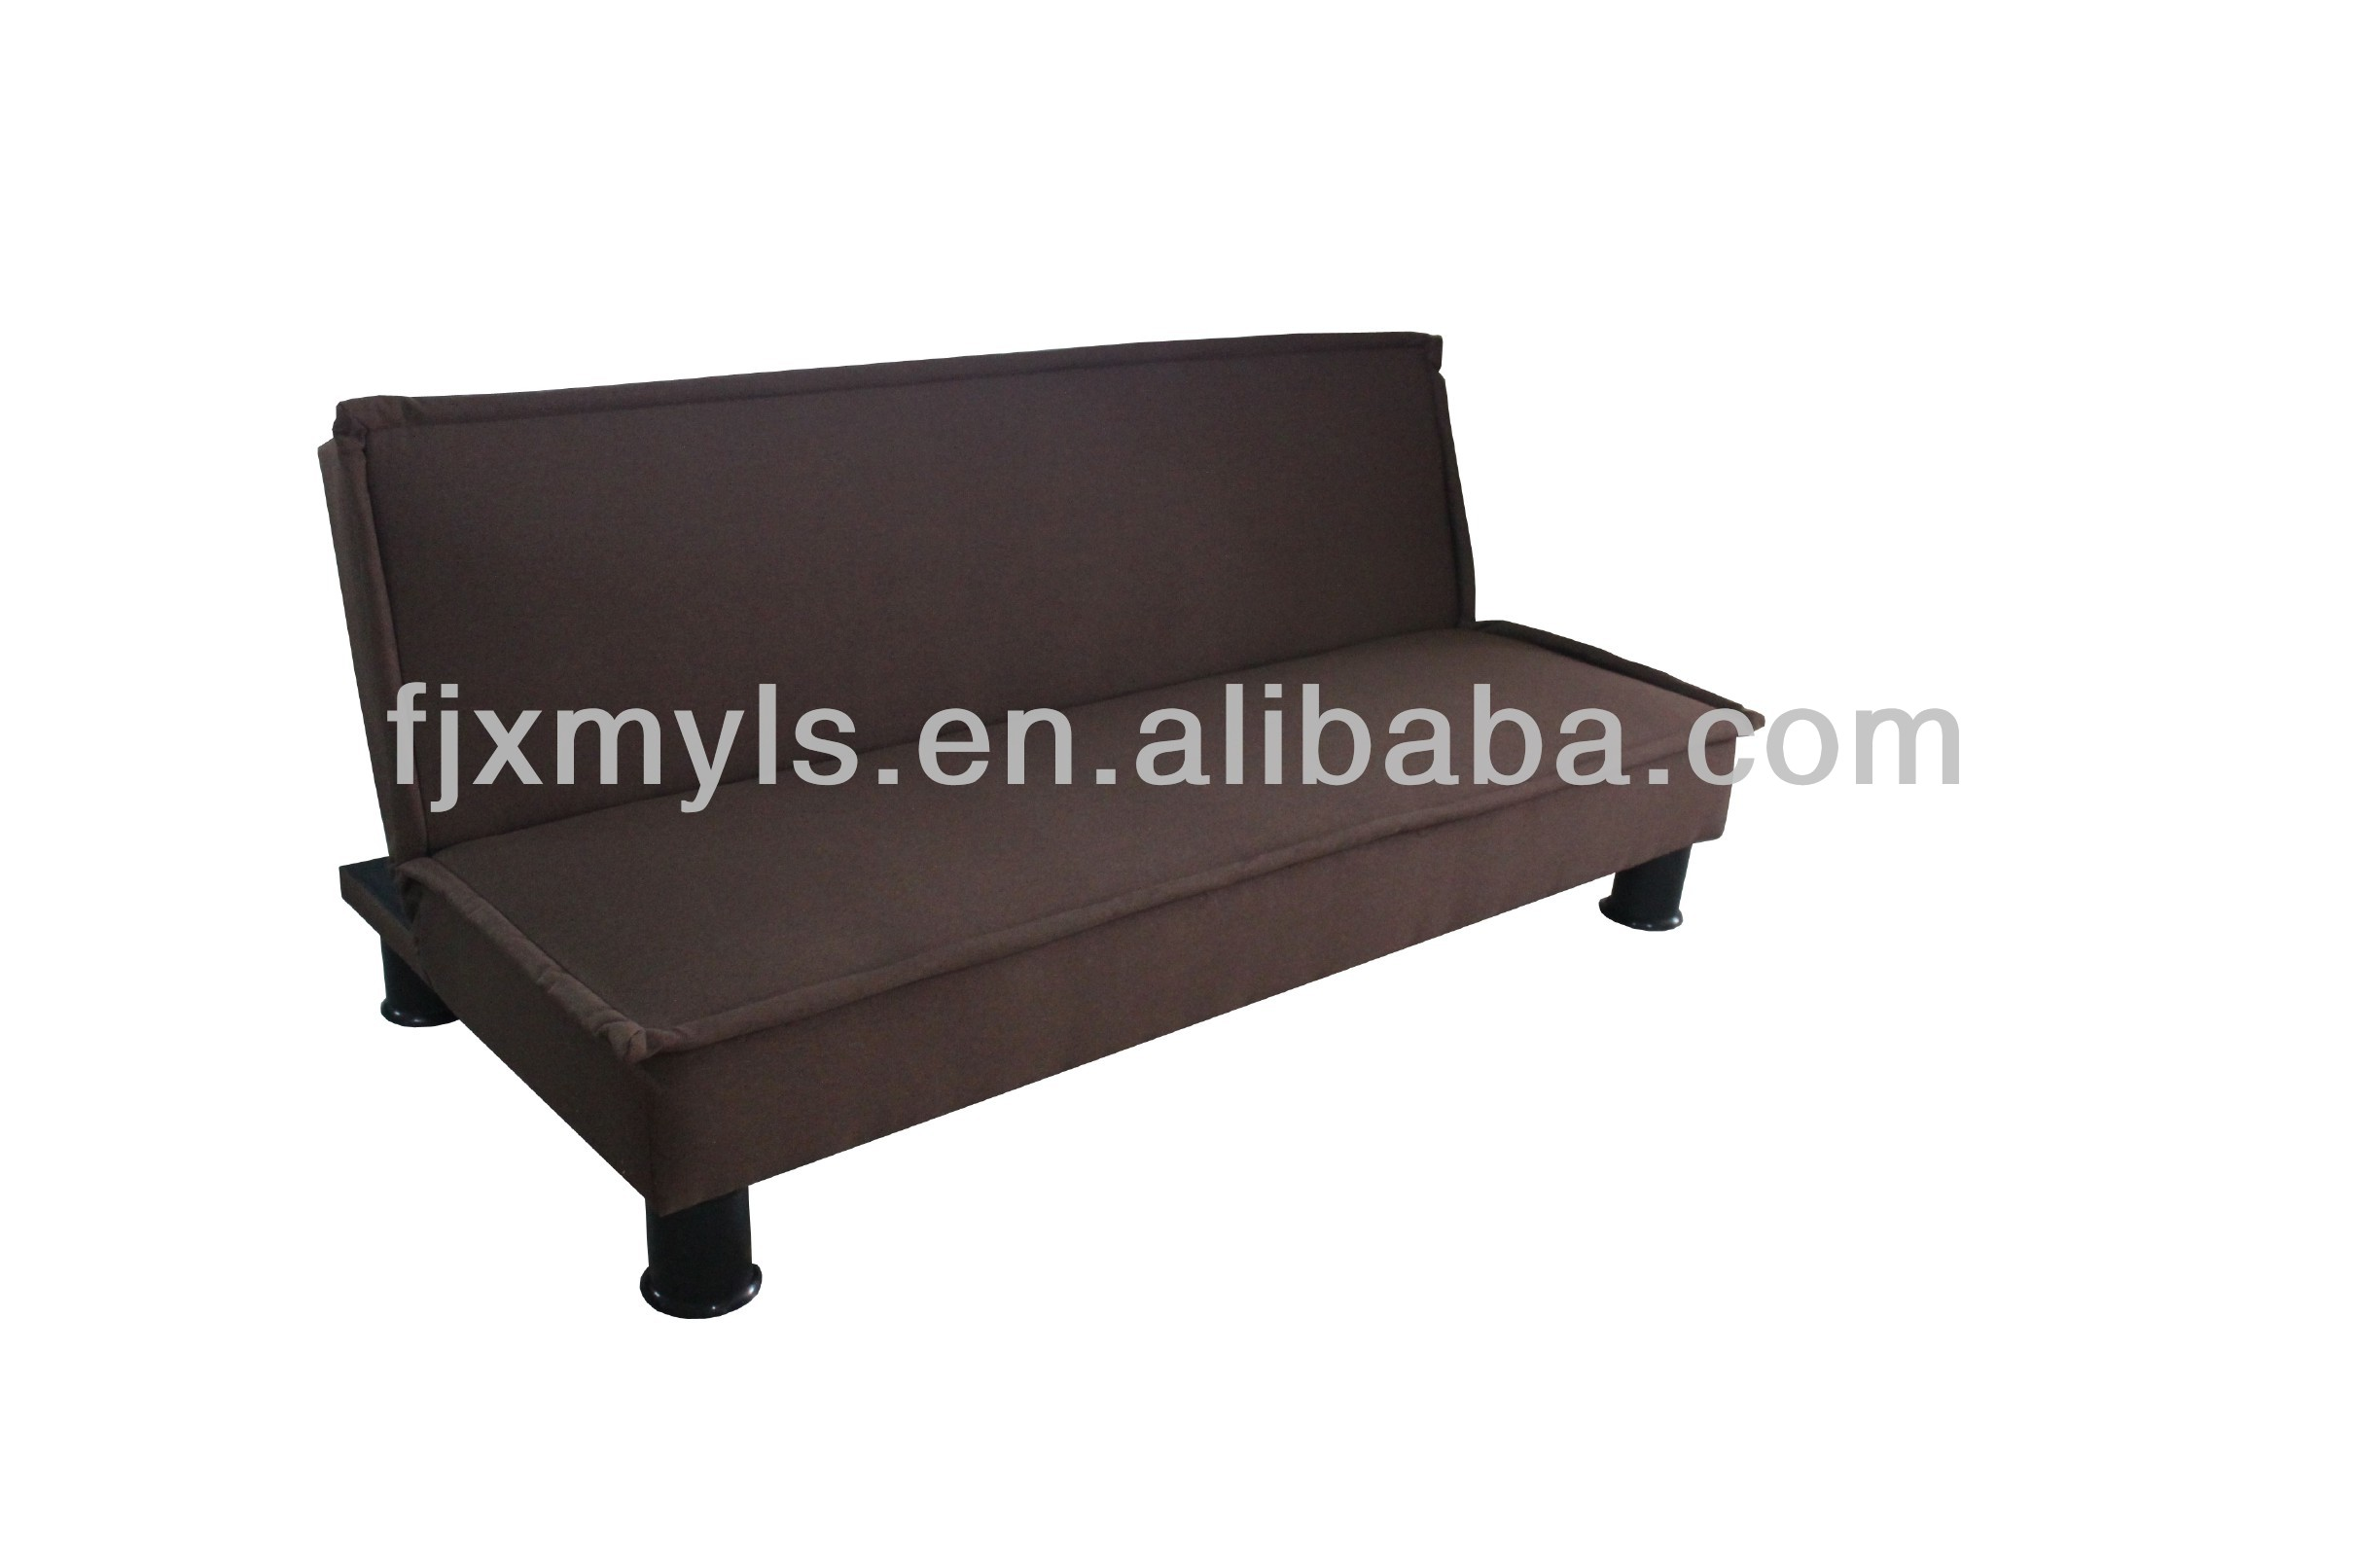 Convertible Sofa Bed Convertible Sofa Bed Suppliers and